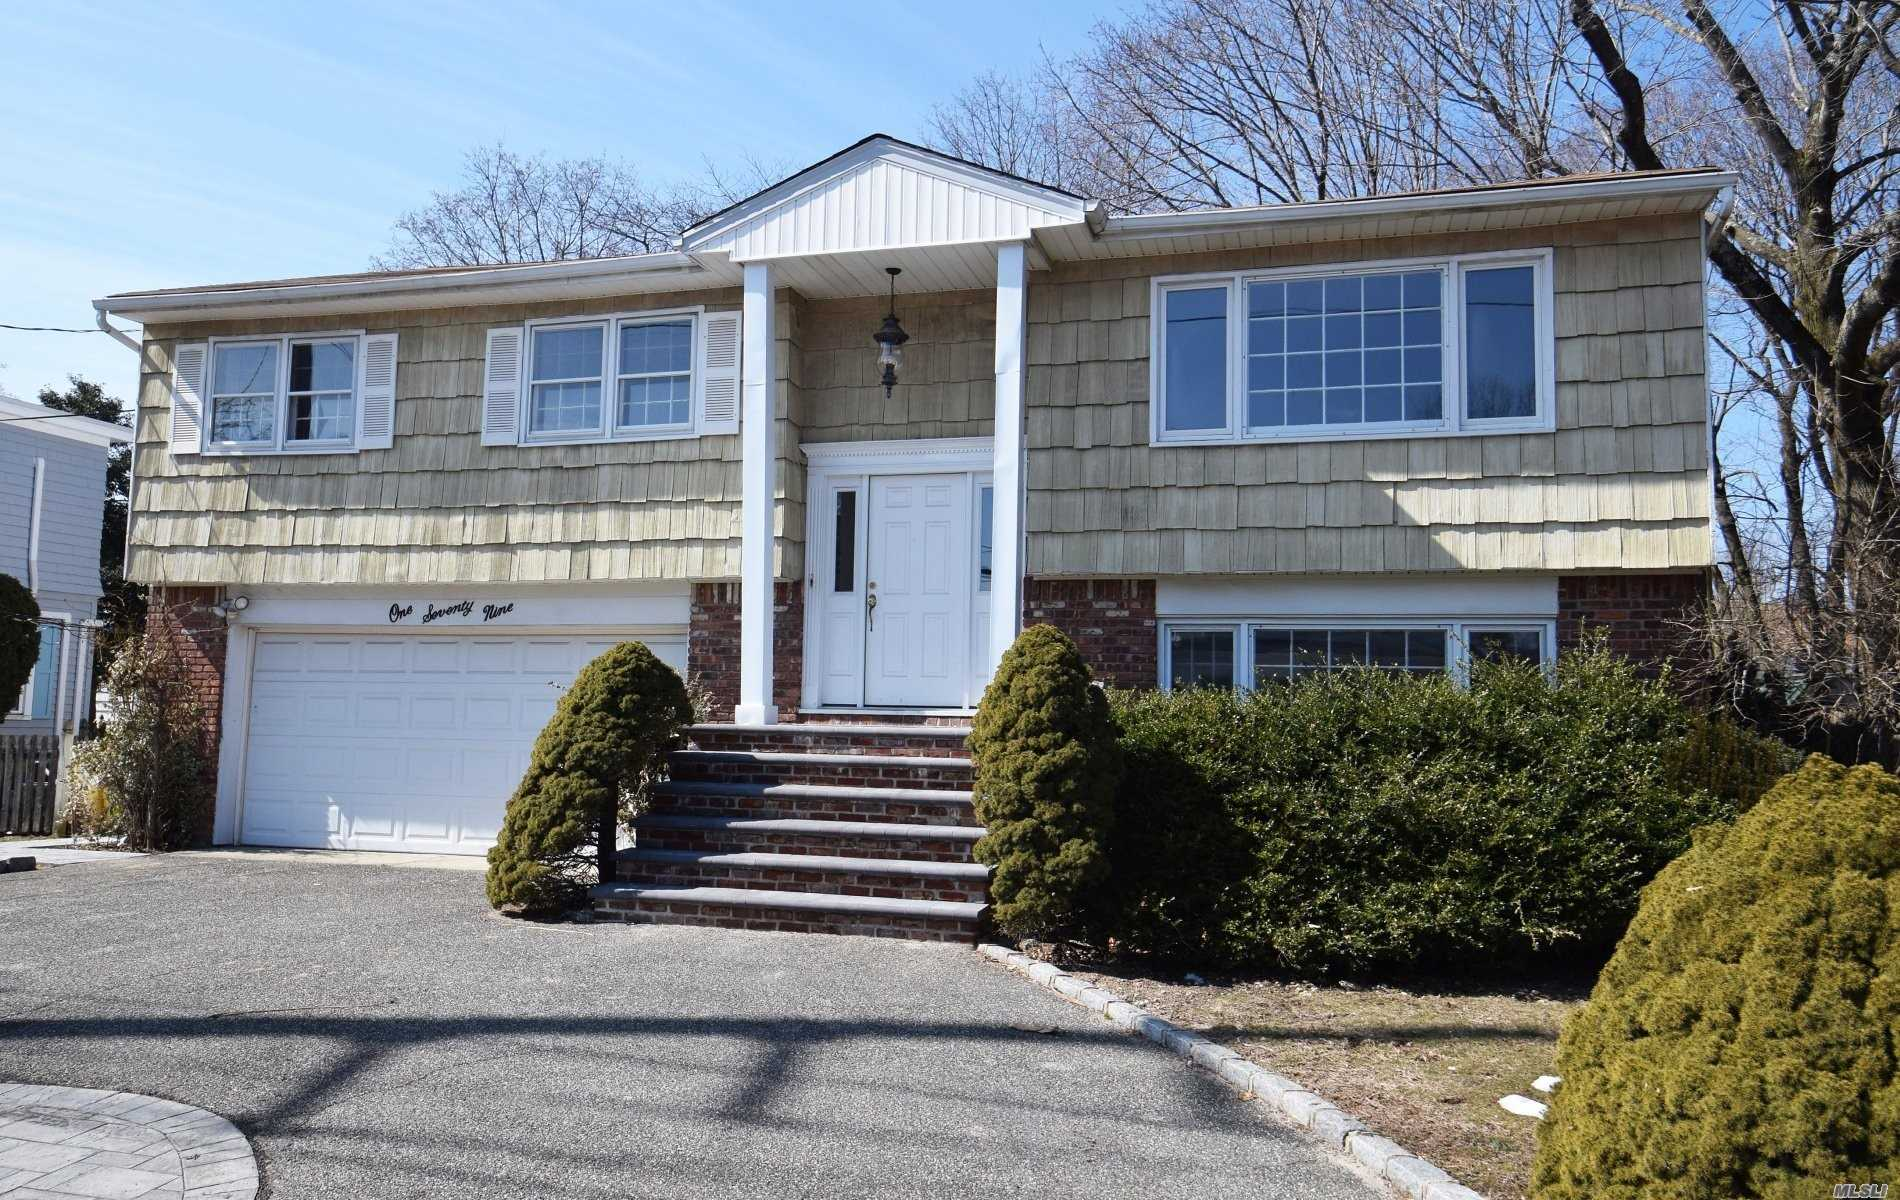 new eik cranite ct, , floors all sanded and stained, new appliances, deck, off dr, , 2 baths re done down all floors new ltv fully painted, down bath new. out side new pavers , new entrance stairs driveway circular good parking